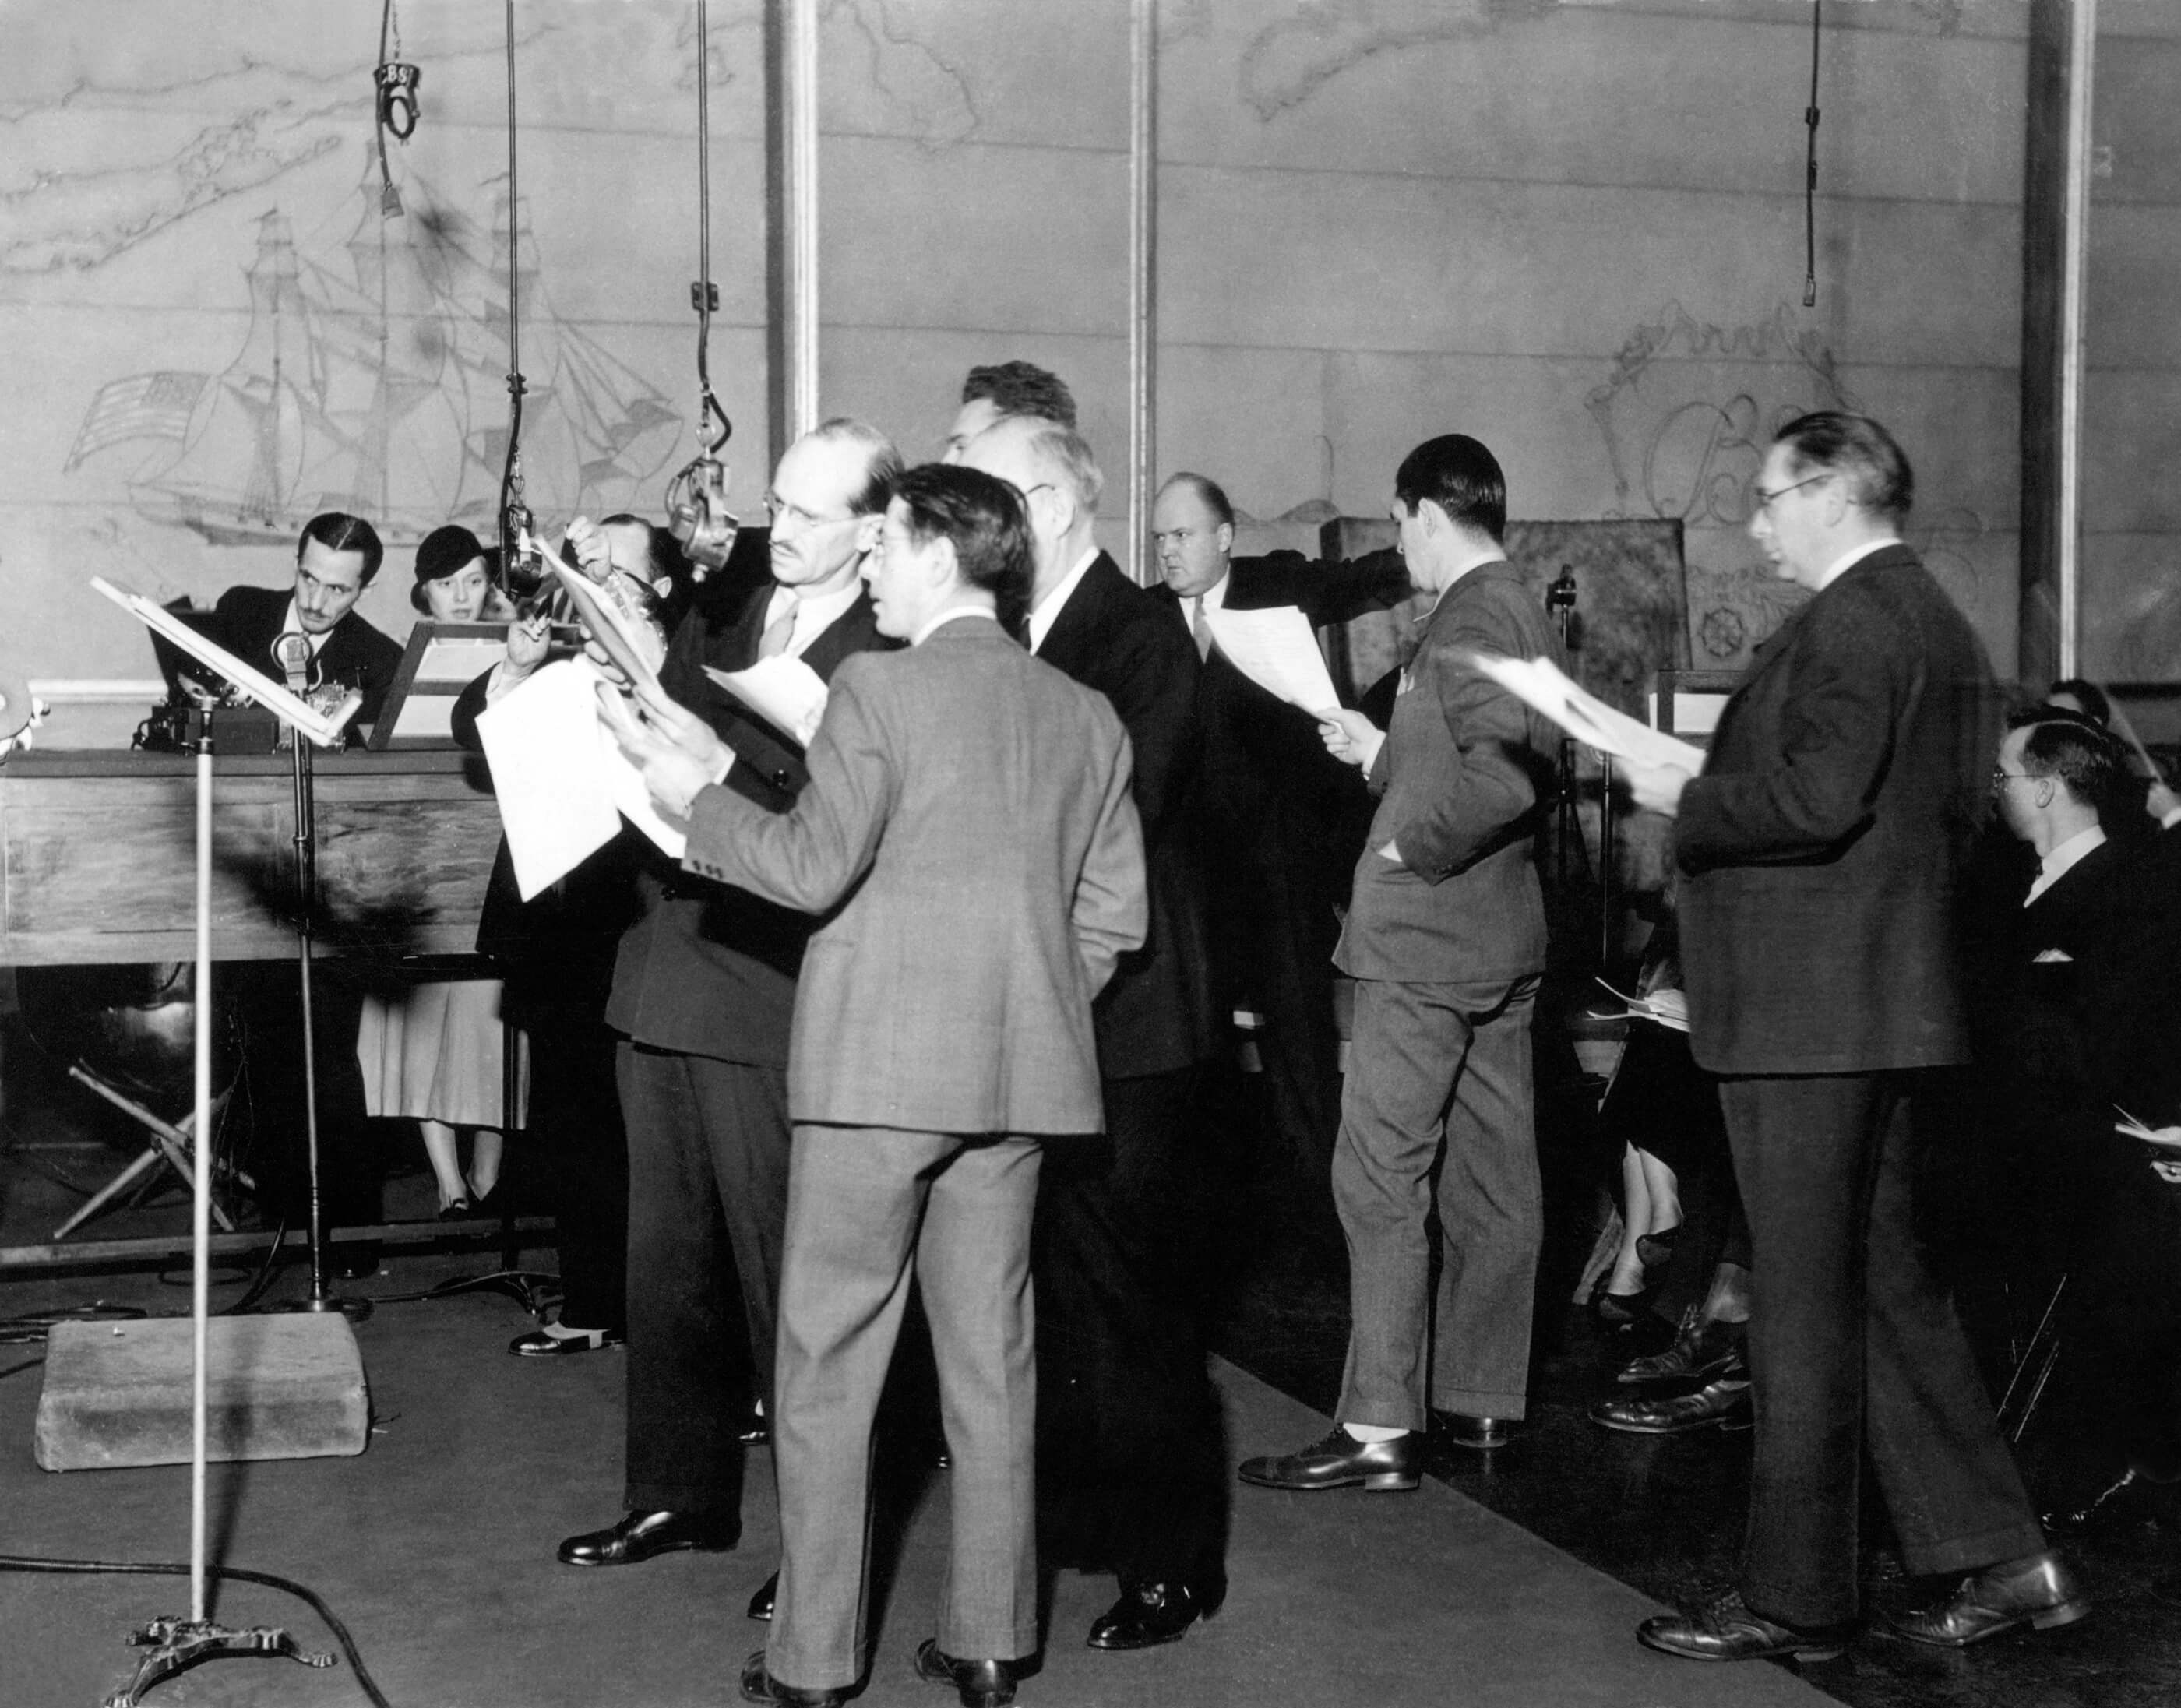 marchoftime-actors-microphone_domainepublic_promocbs1931-37s